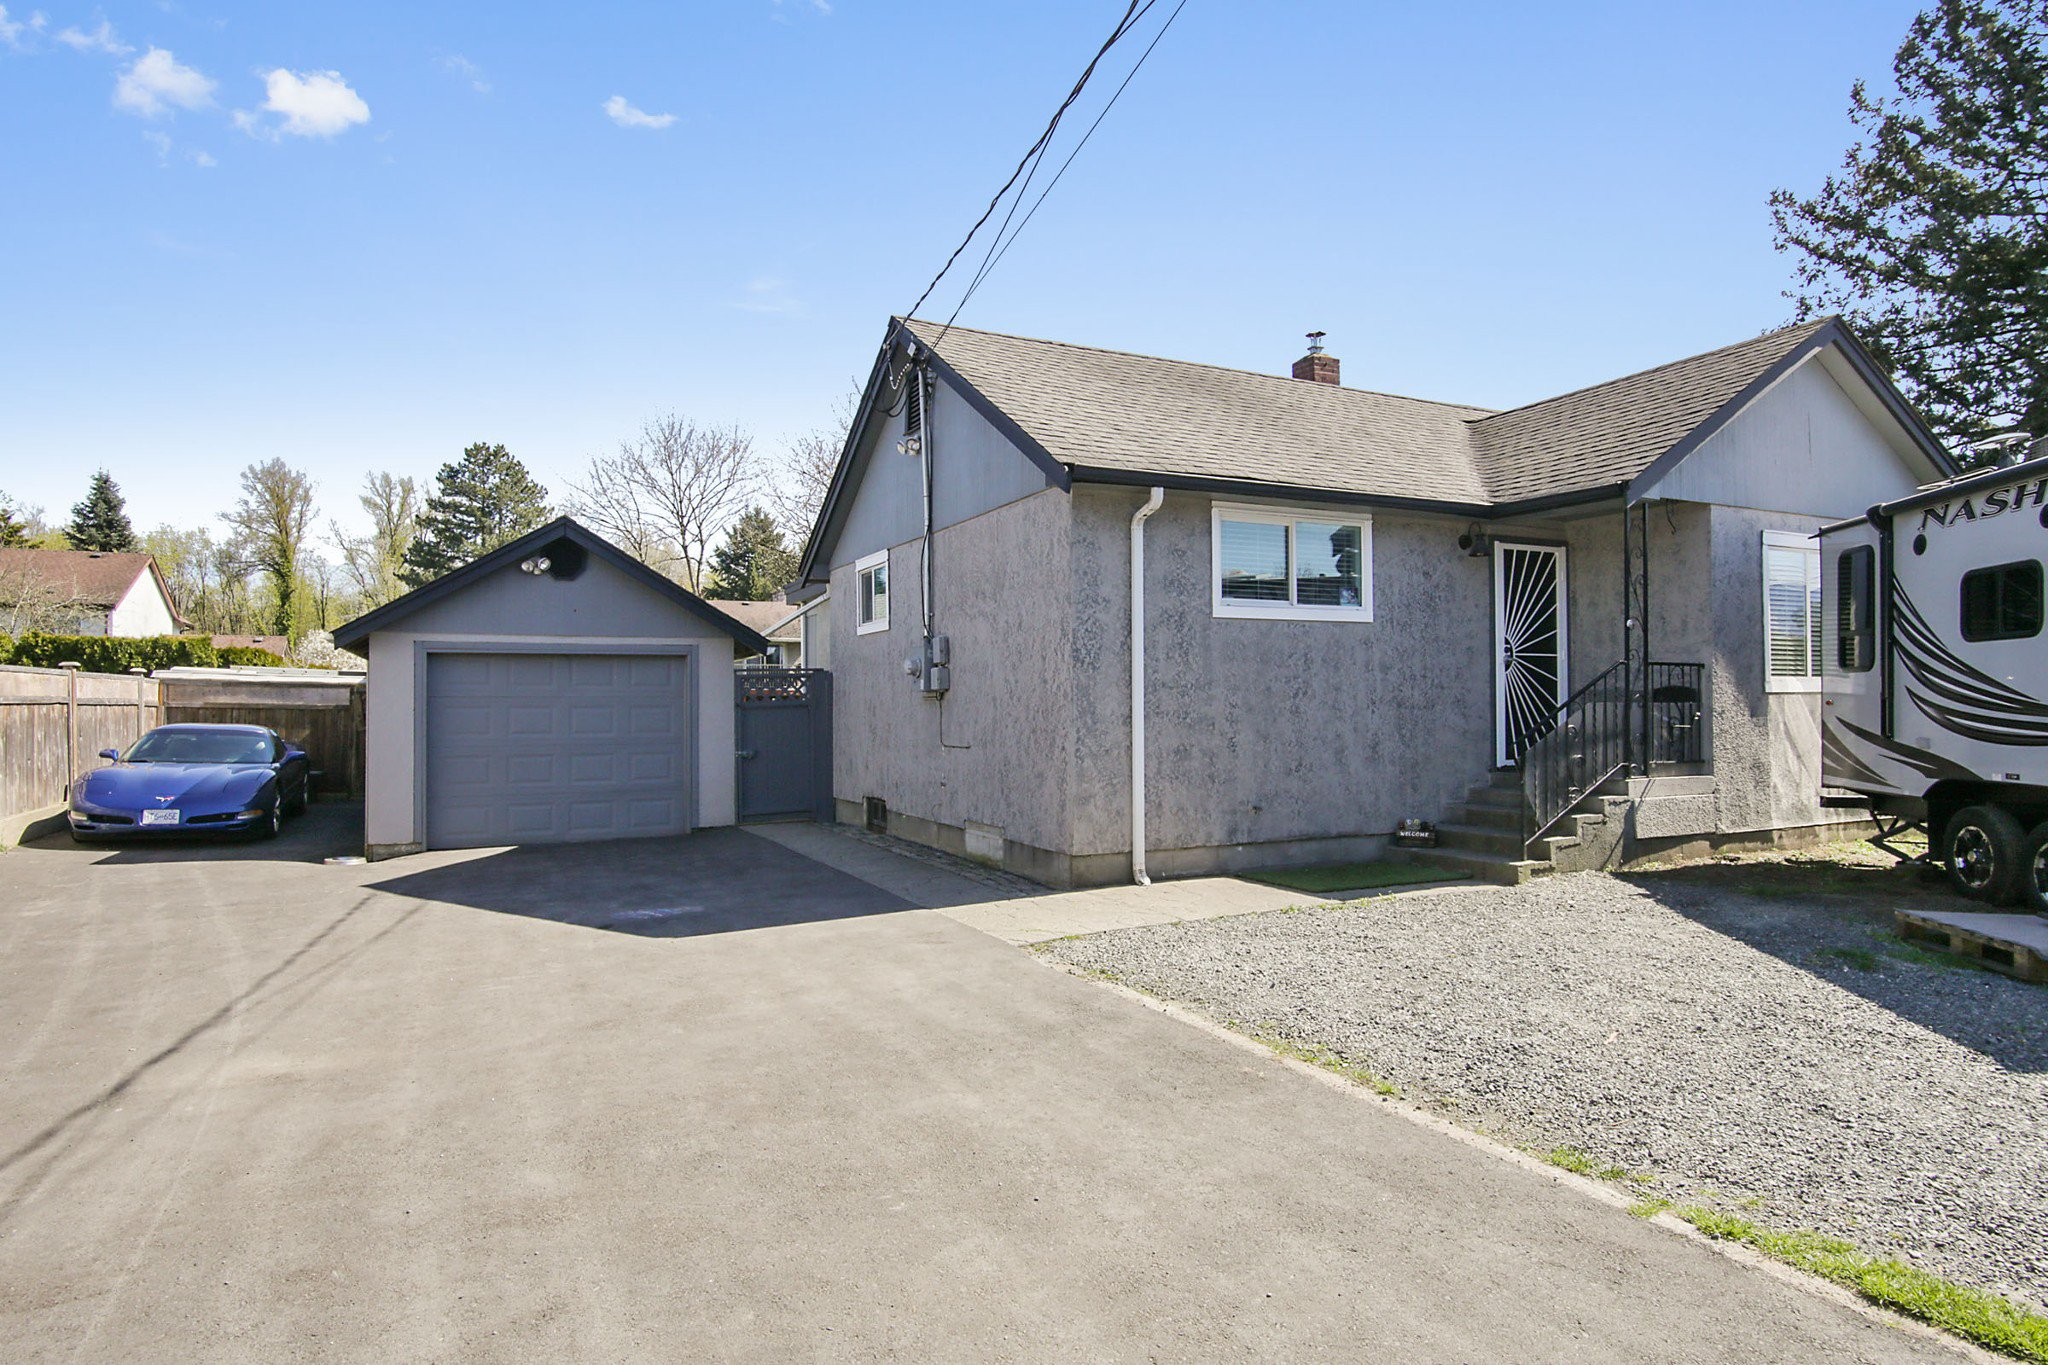 Main Photo: 9846 MENZIES STREET in Chilliwack: Chilliwack N Yale-Well House for sale : MLS®# R2451610